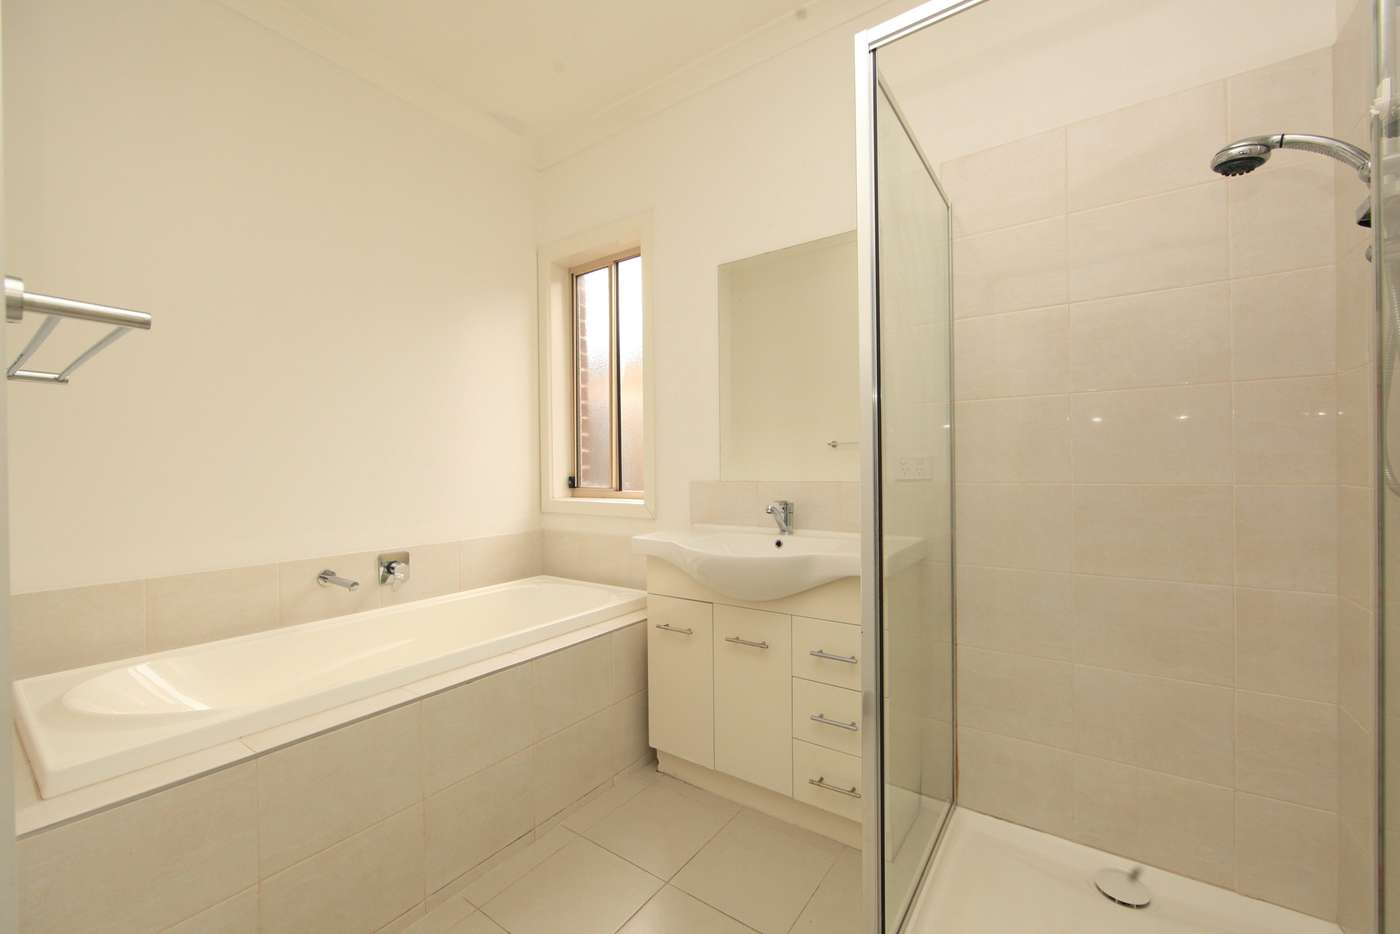 Seventh view of Homely house listing, 8 Methven Avenue, South Morang VIC 3752